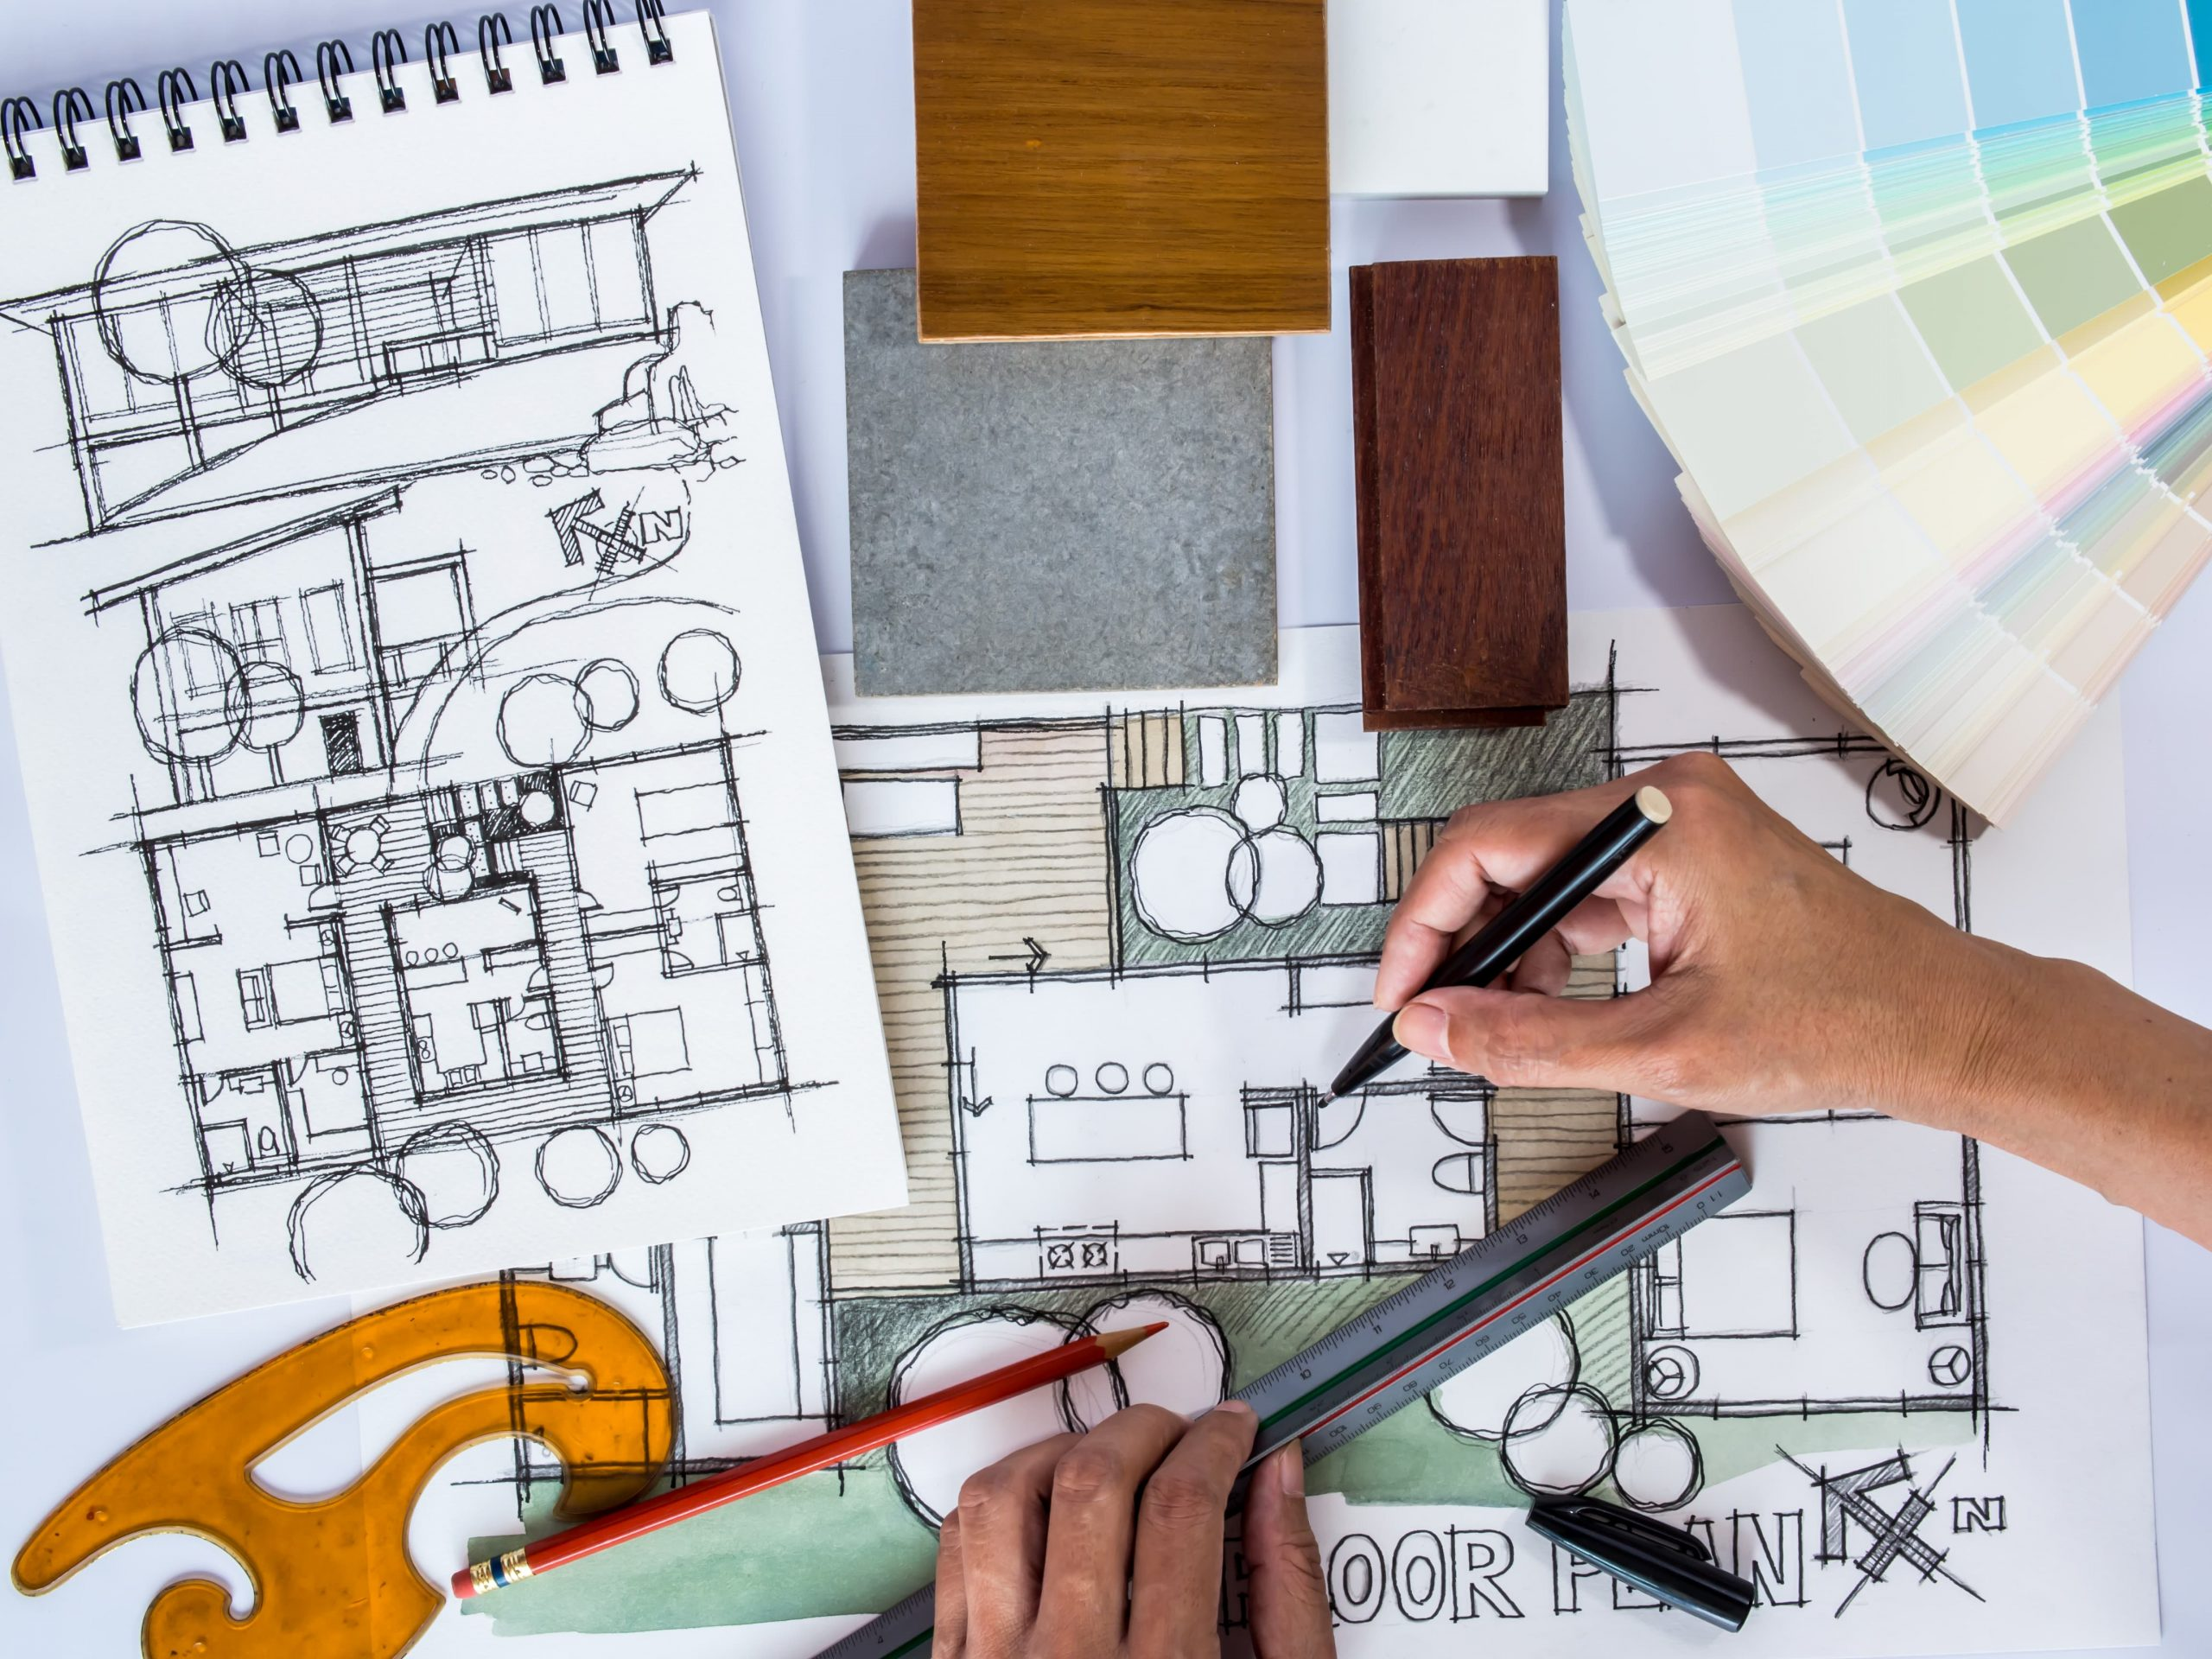 What Should I Do to Stick to My Remodeling Goals